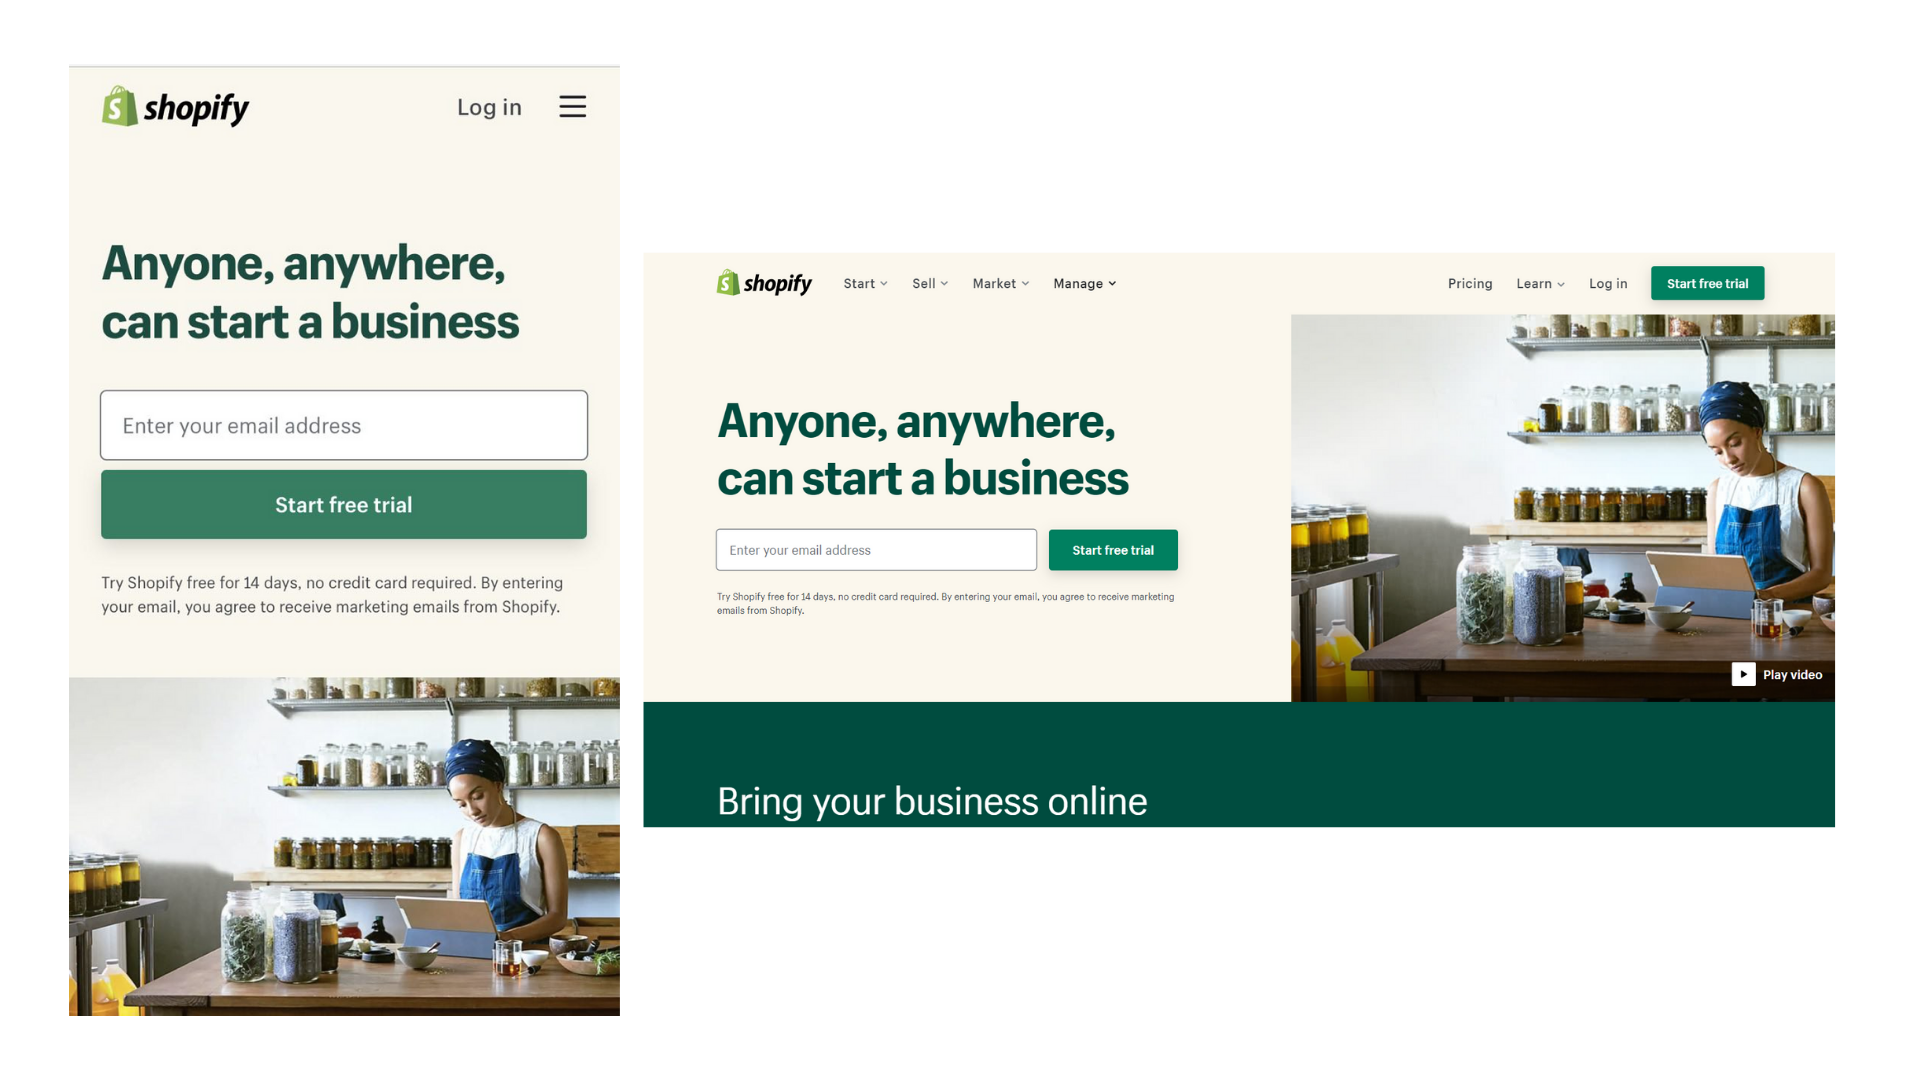 Shopify's website as an example of a responsive design